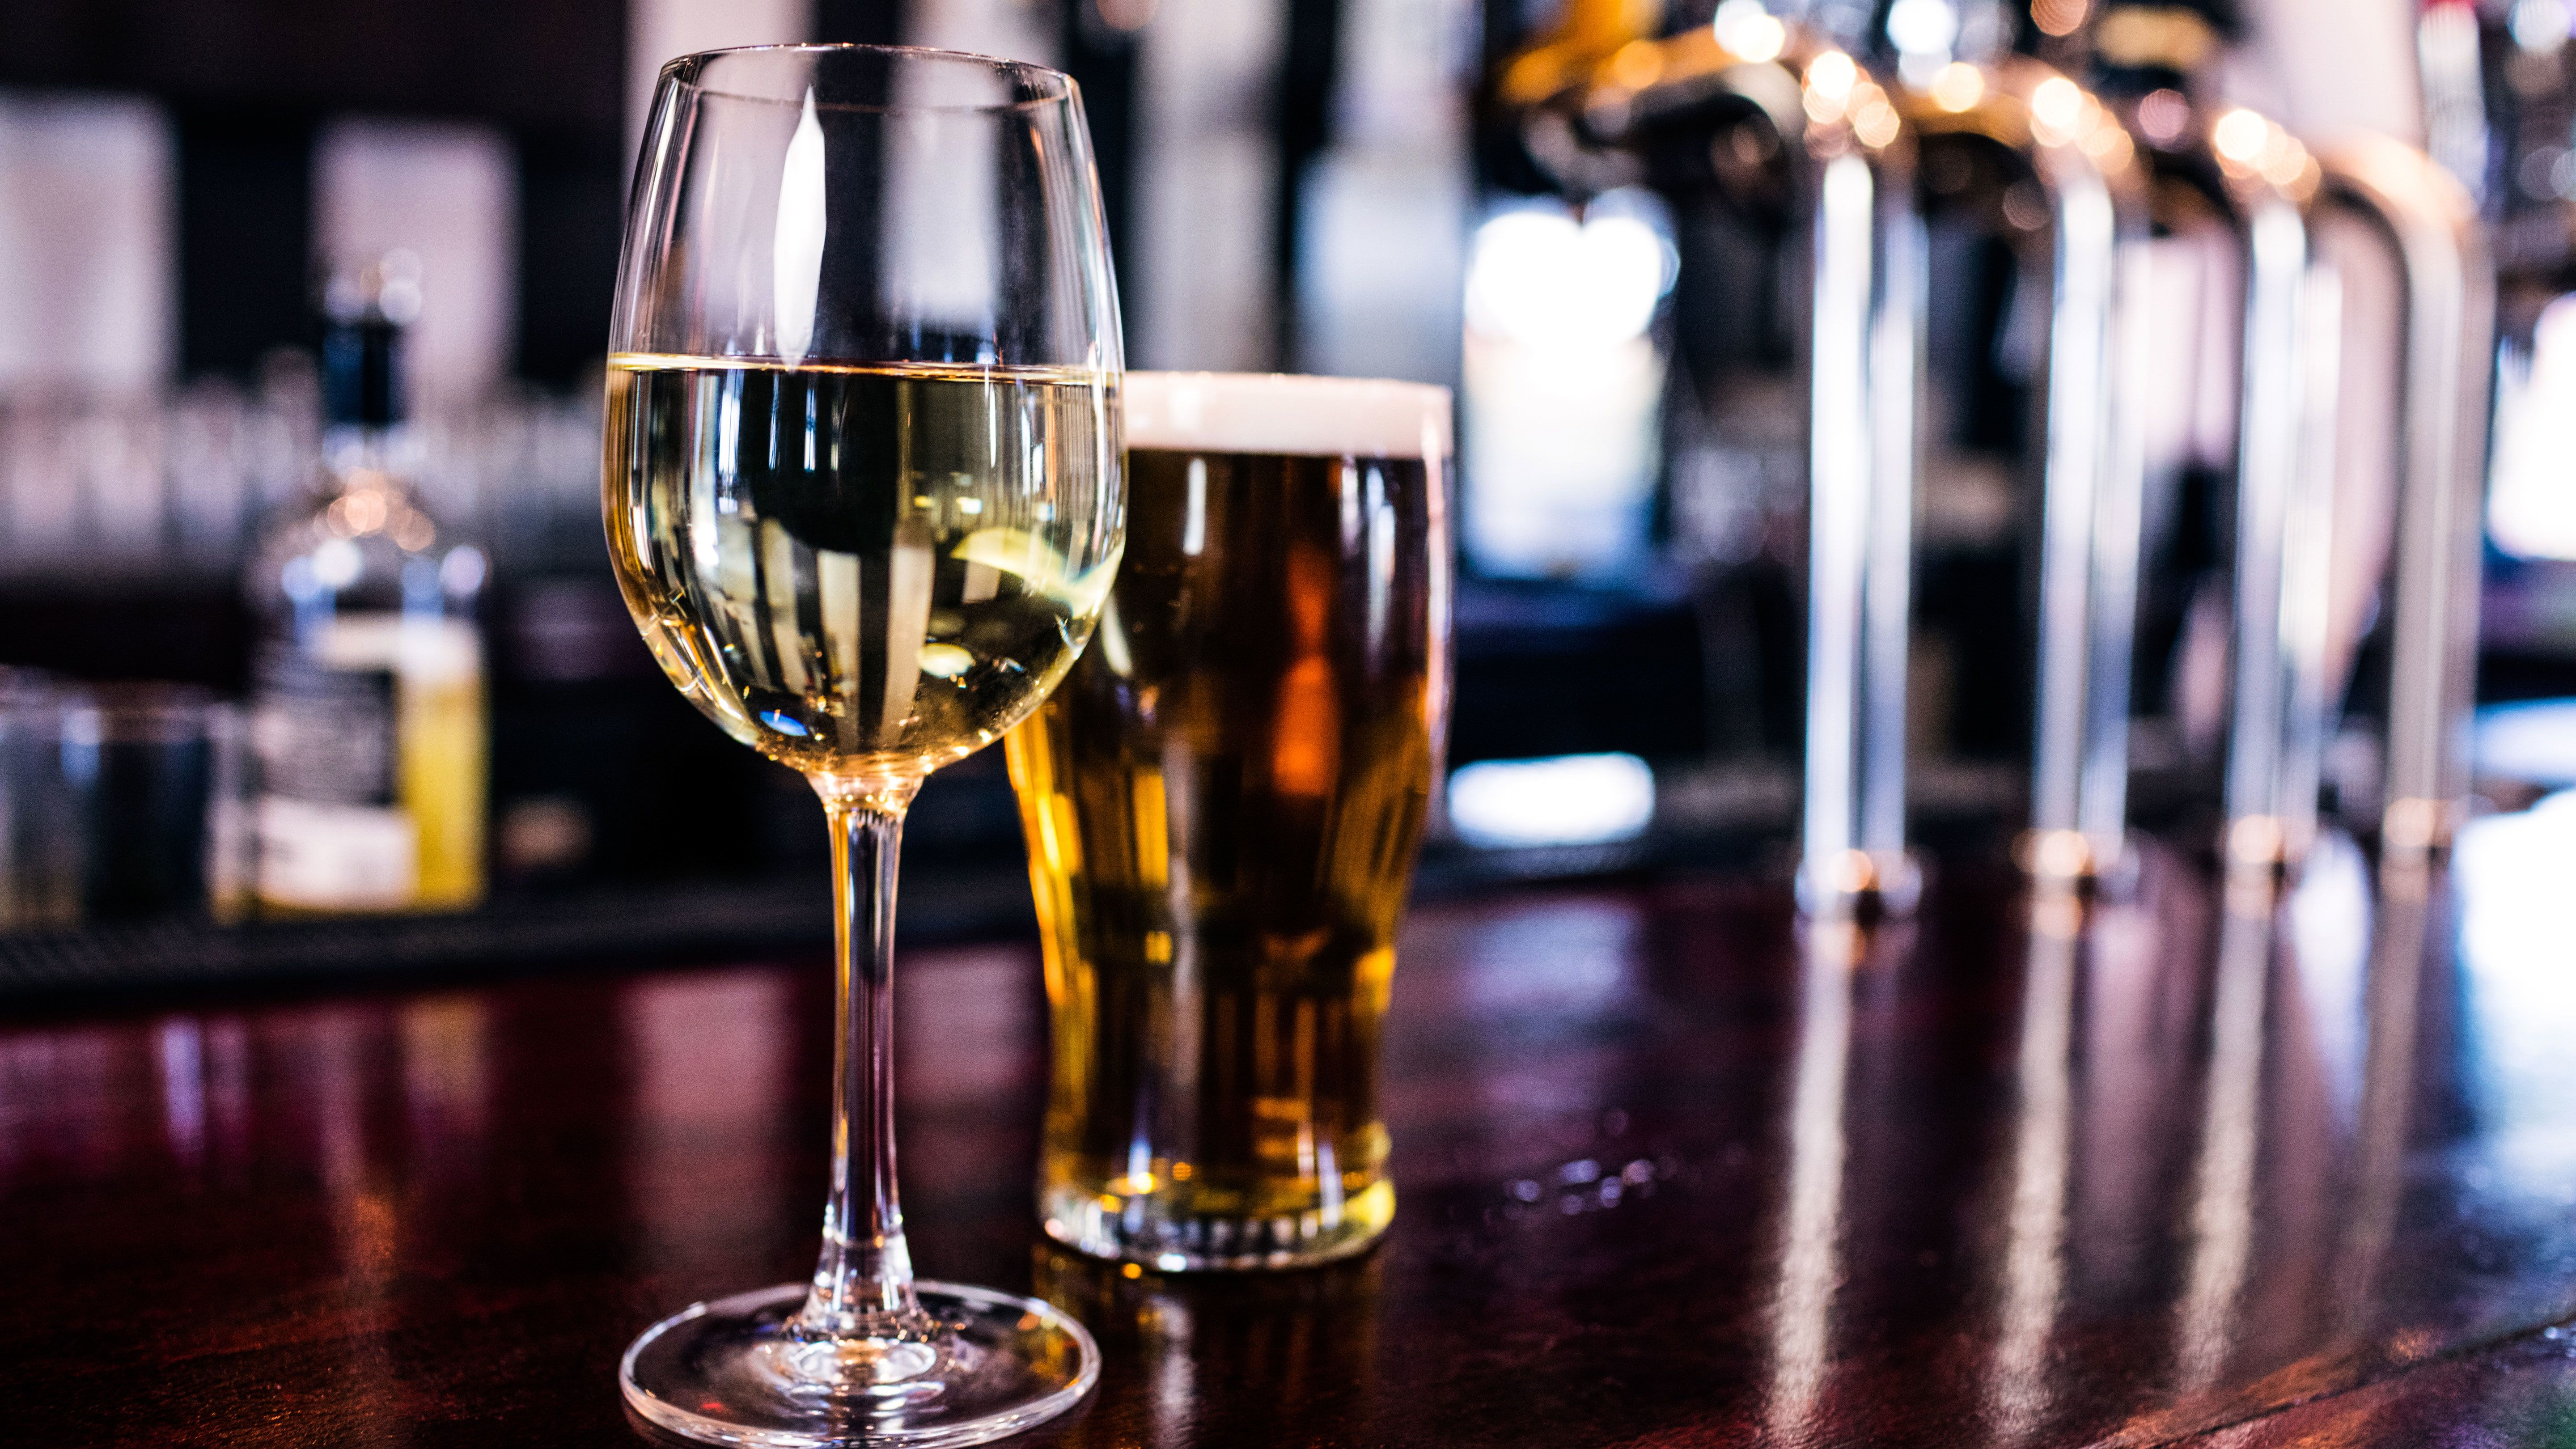 5 Vital Facts About Alcohol Abuse